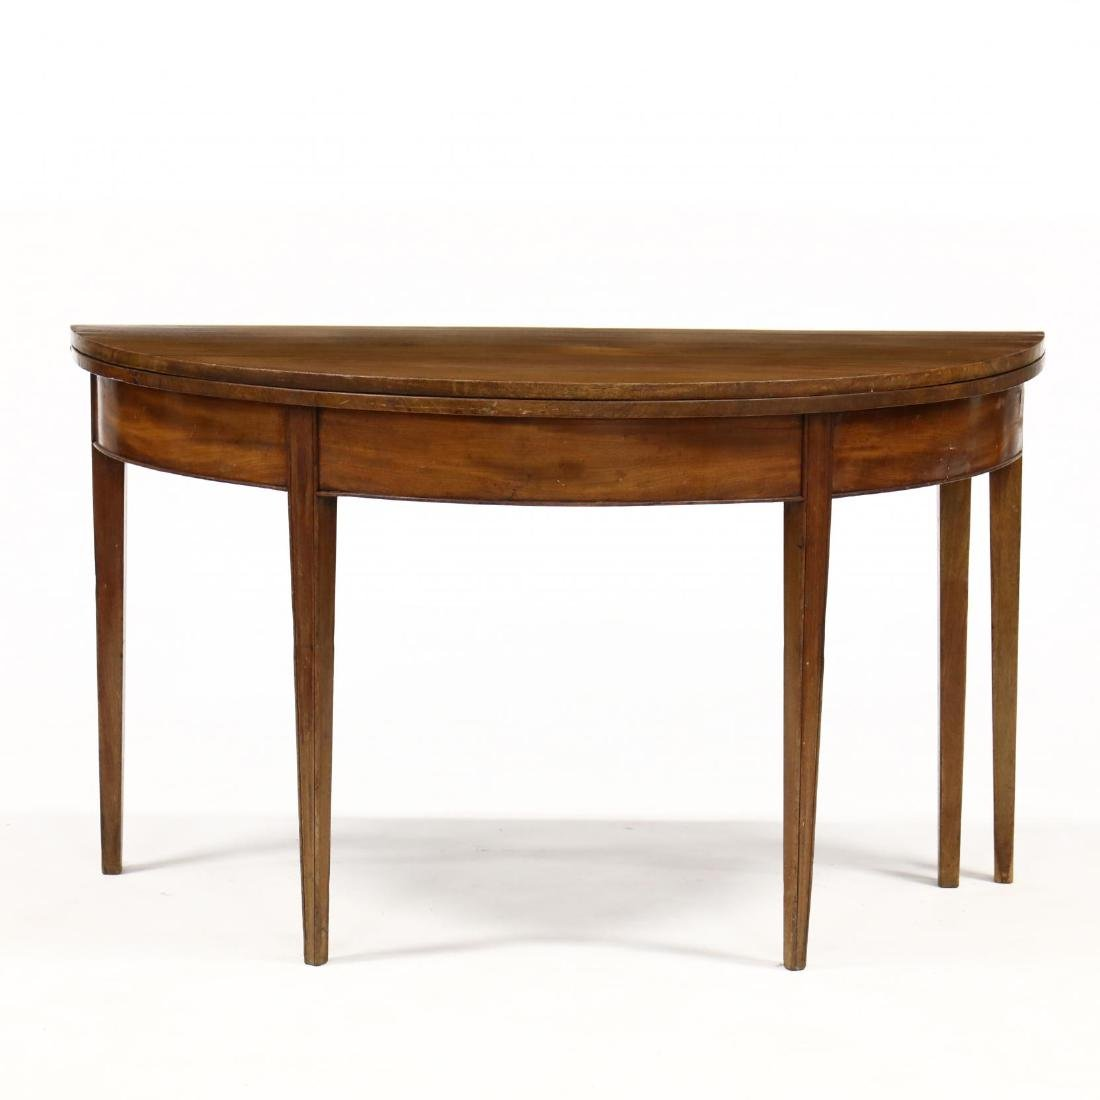 Virginia Federal Mahogany Demilune Console Table